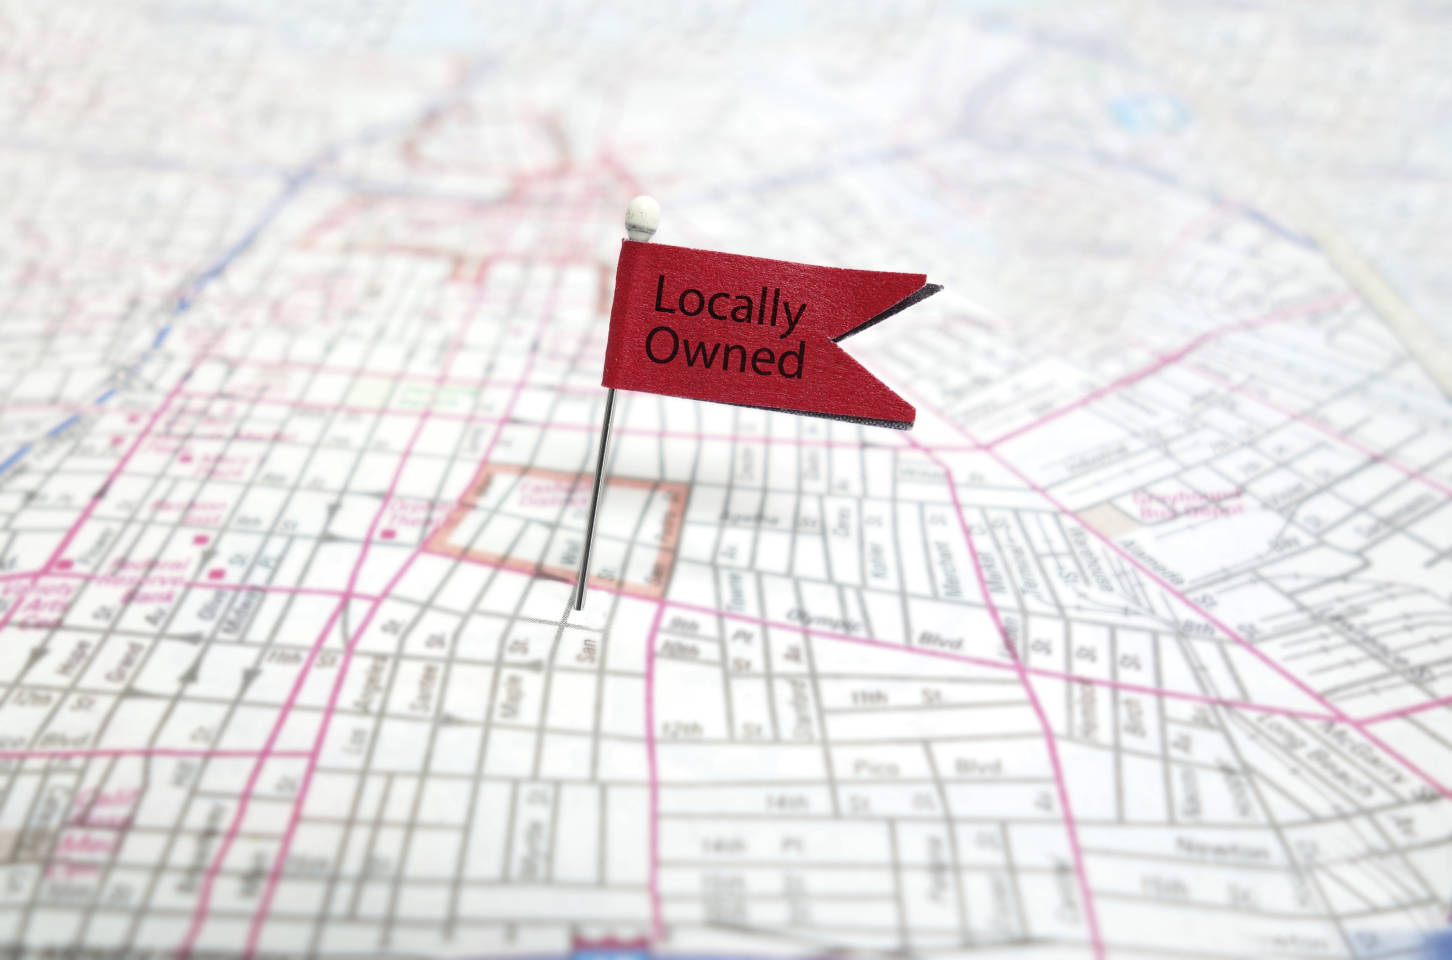 Locally Owned pin flag on map